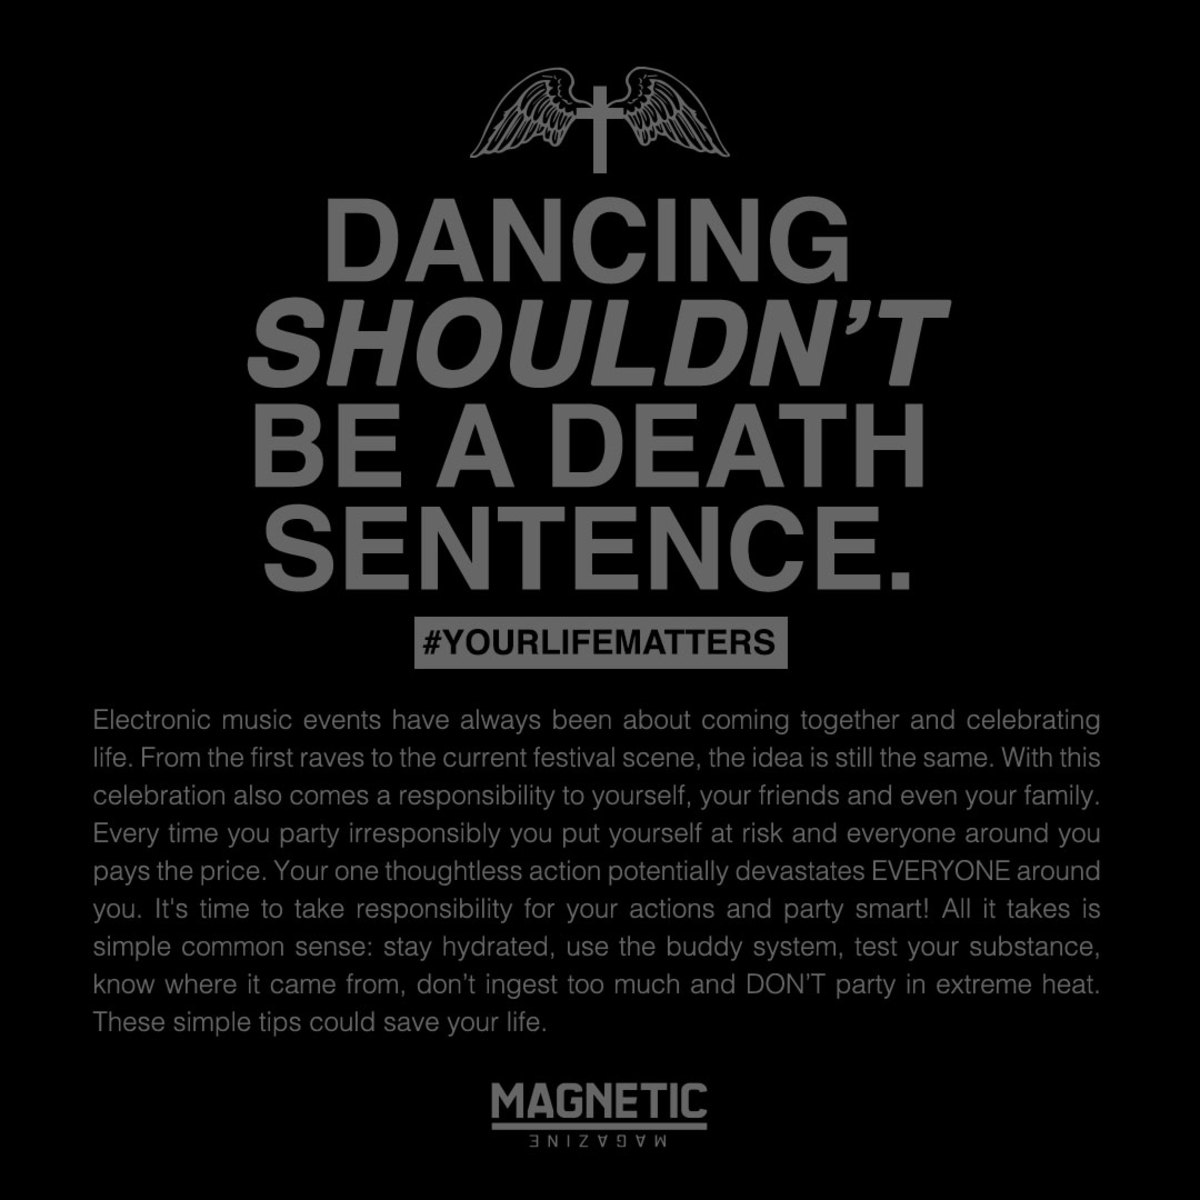 Dancing Shouldn't Be A Death Sentence